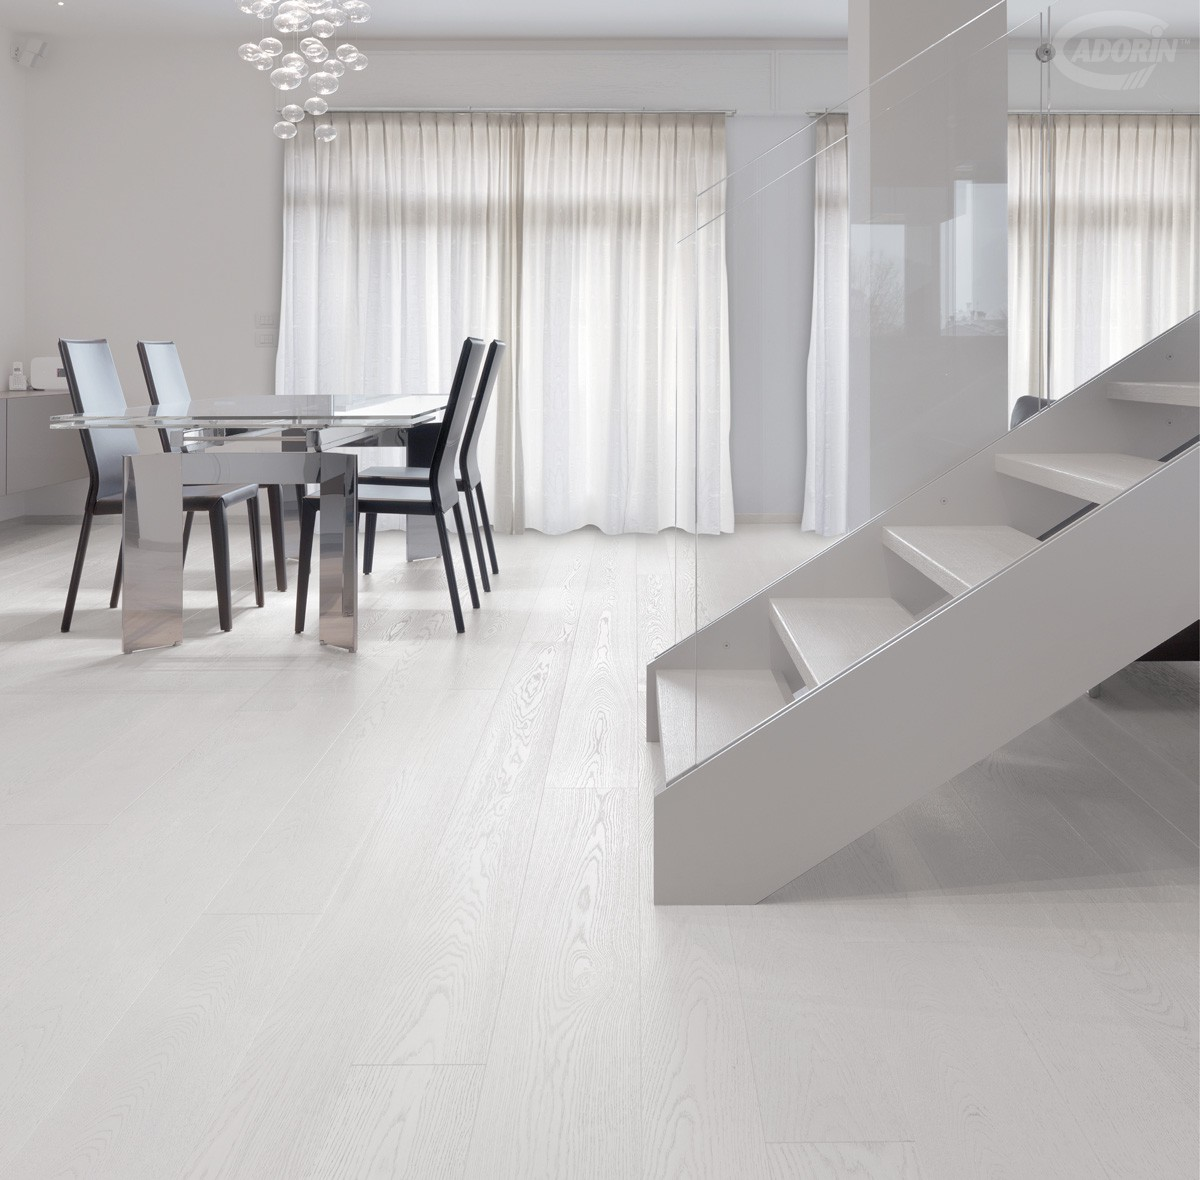 Rovere Sbiancato Parquet Cheap Rovere Sbiancato Parquet With Rovere